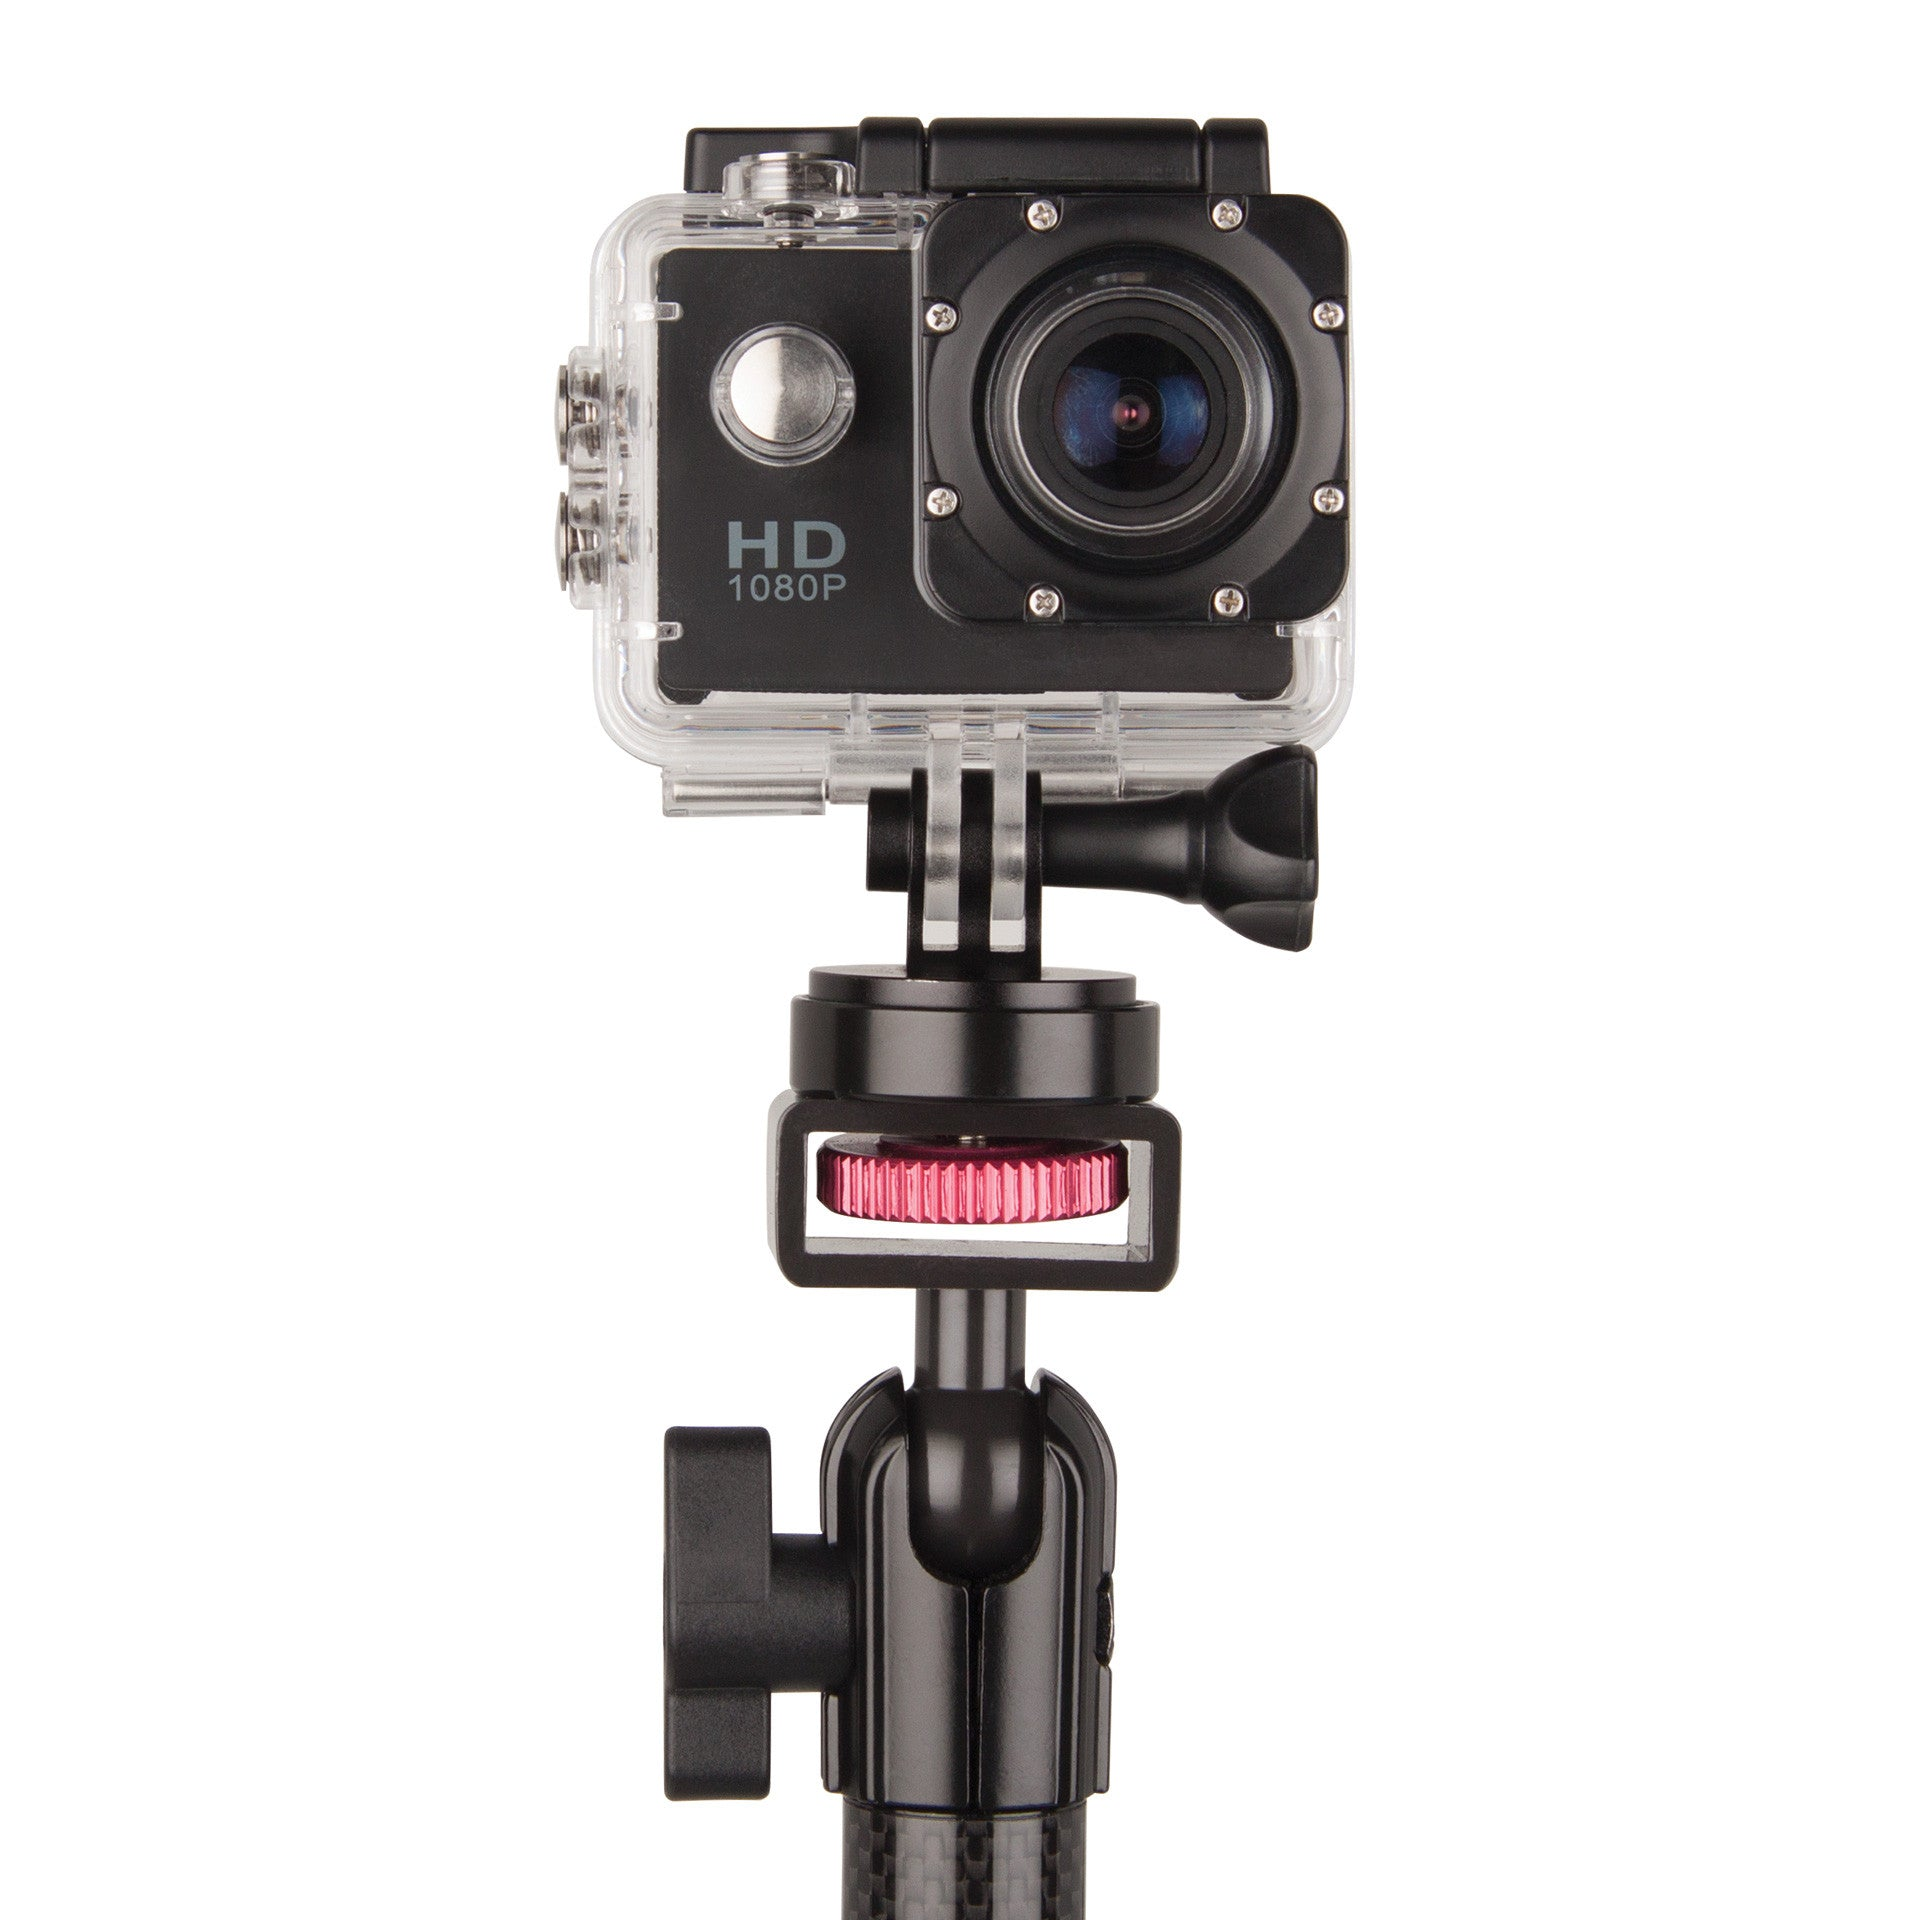 MagConnect GoPro Camera Tripod Adapter from The Joy Factory